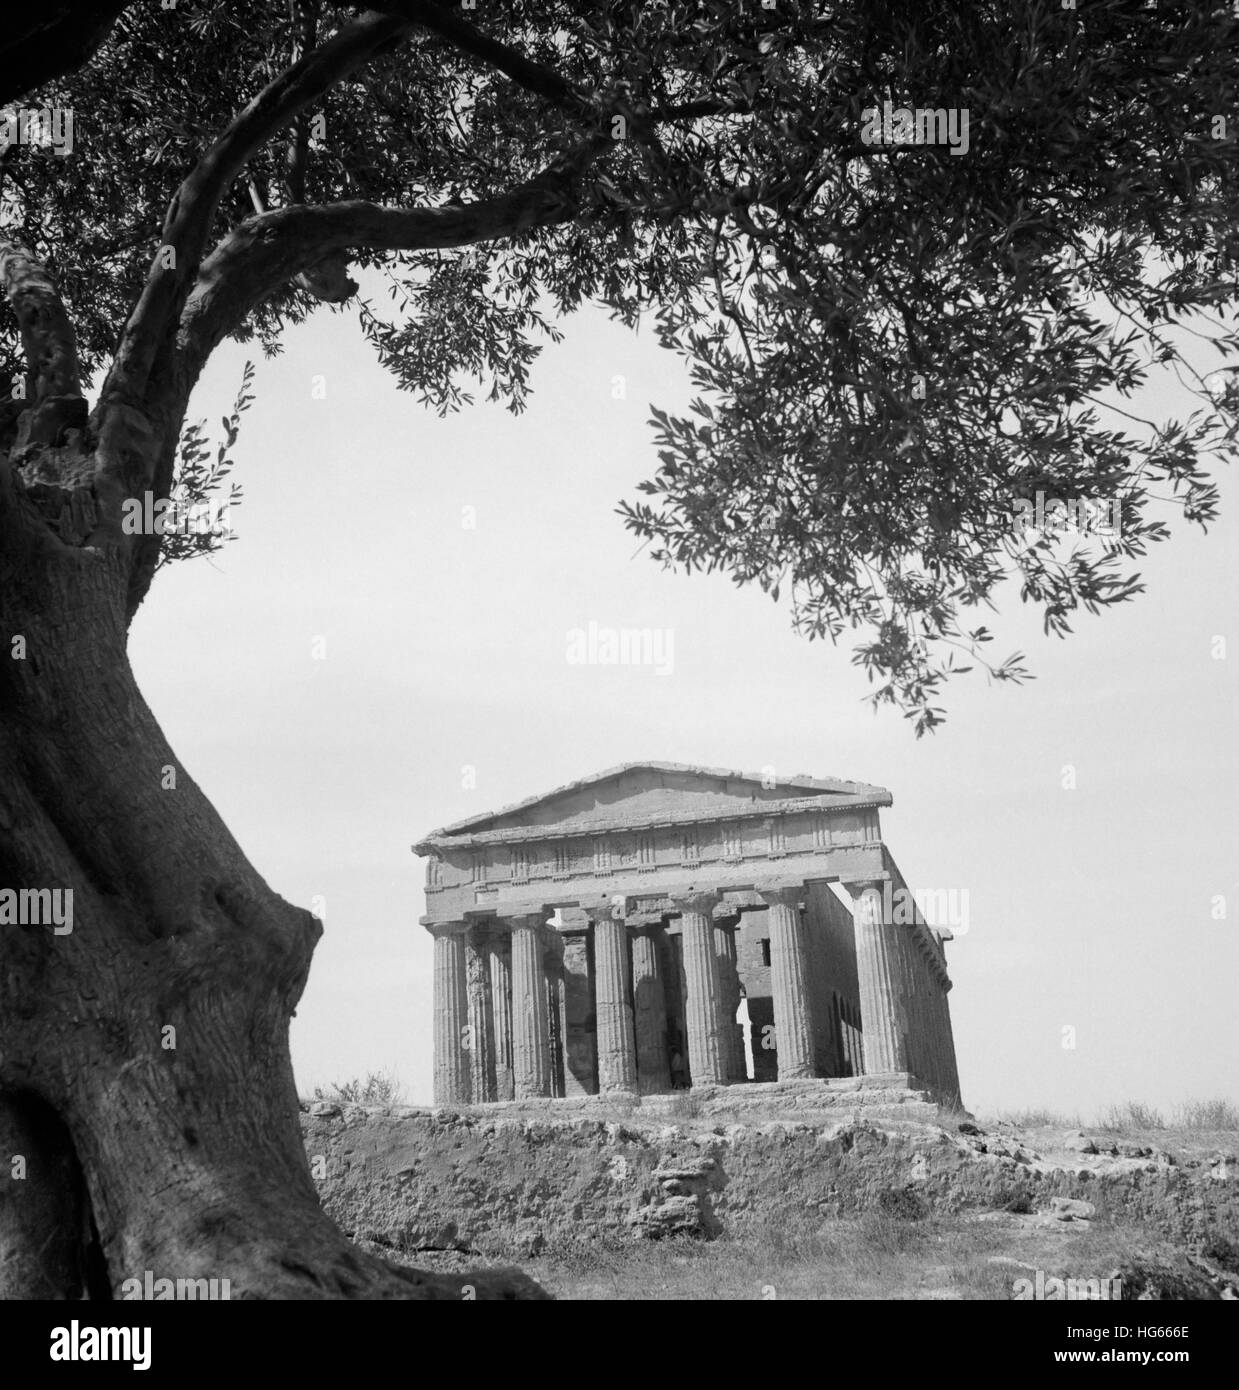 An ancient Greek temple in Agrigento, Sicily, 1943. - Stock Image